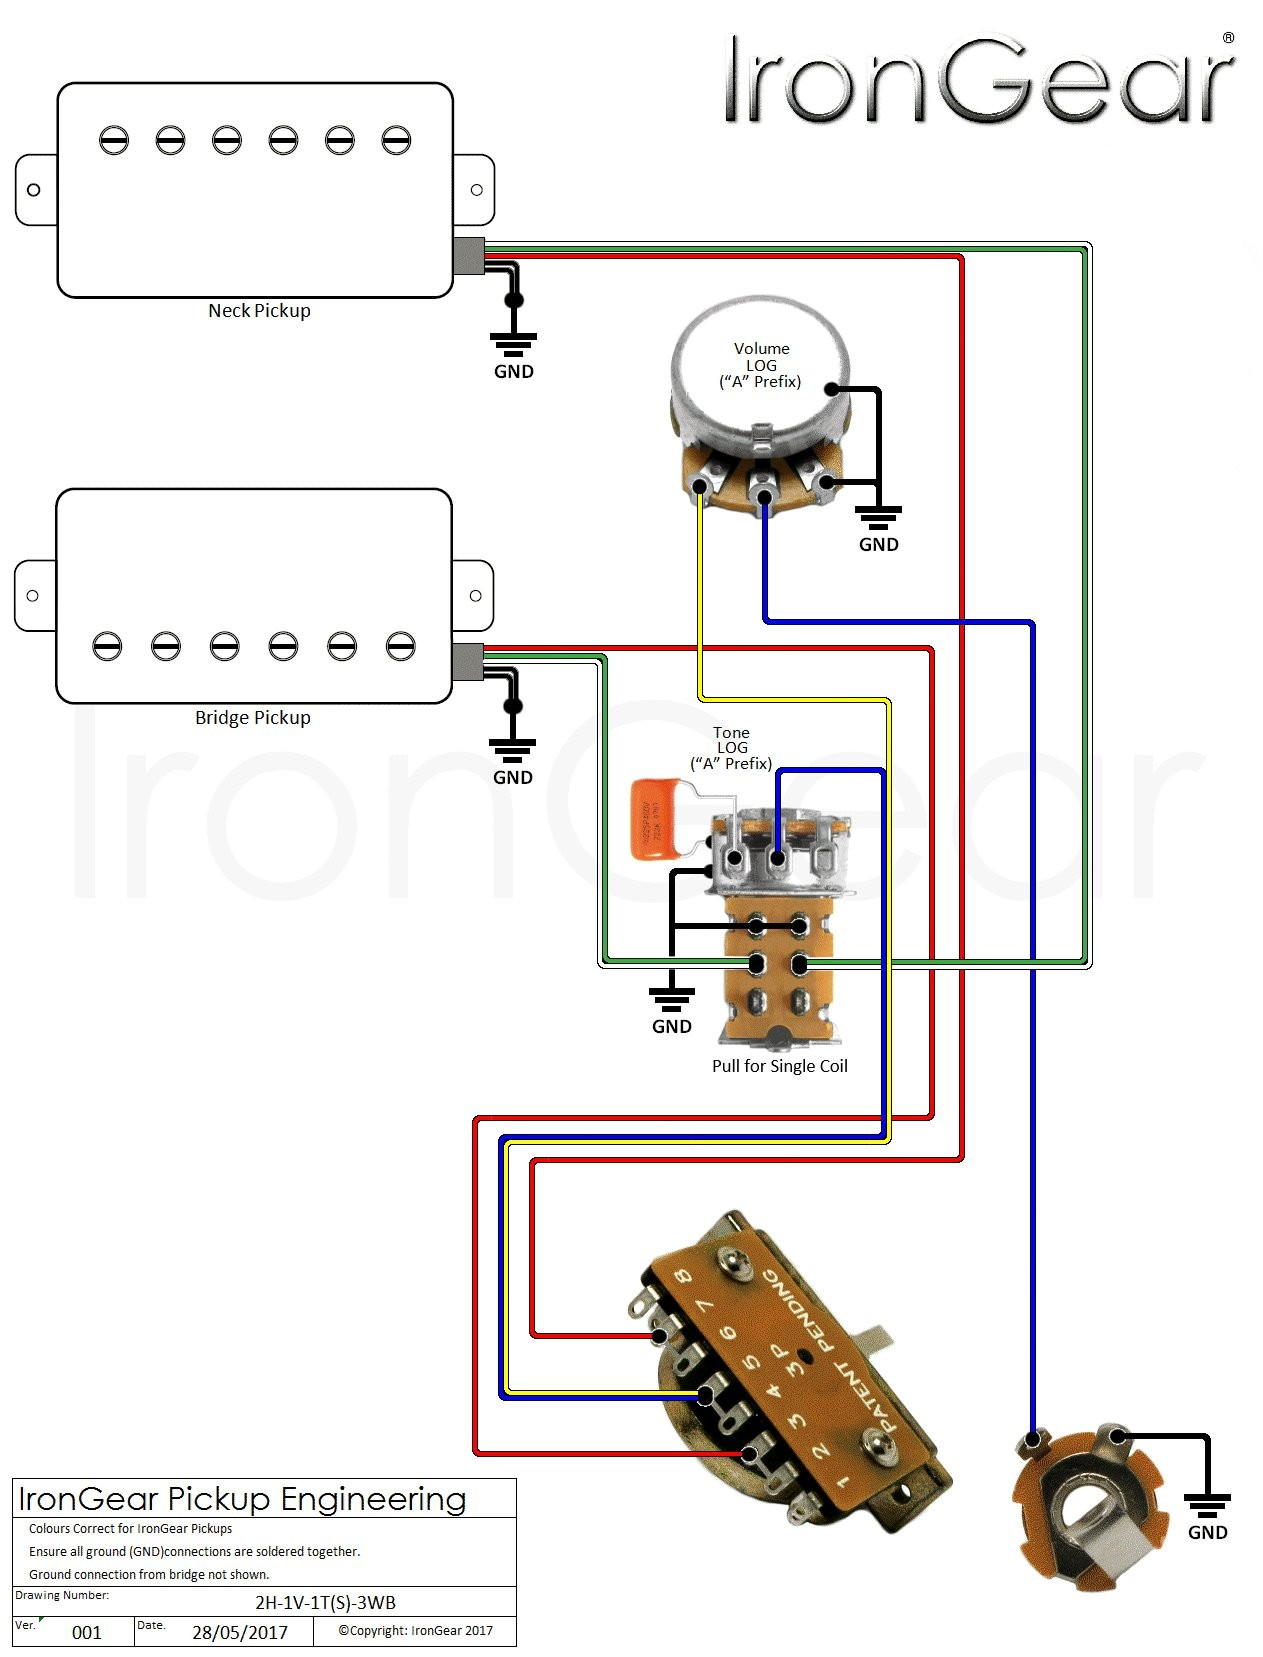 Emg Hz Wiring Diagram Awesome Three Humbucker Wiring Diagram Copy Irongear Pickups  Wiring Emg Hz